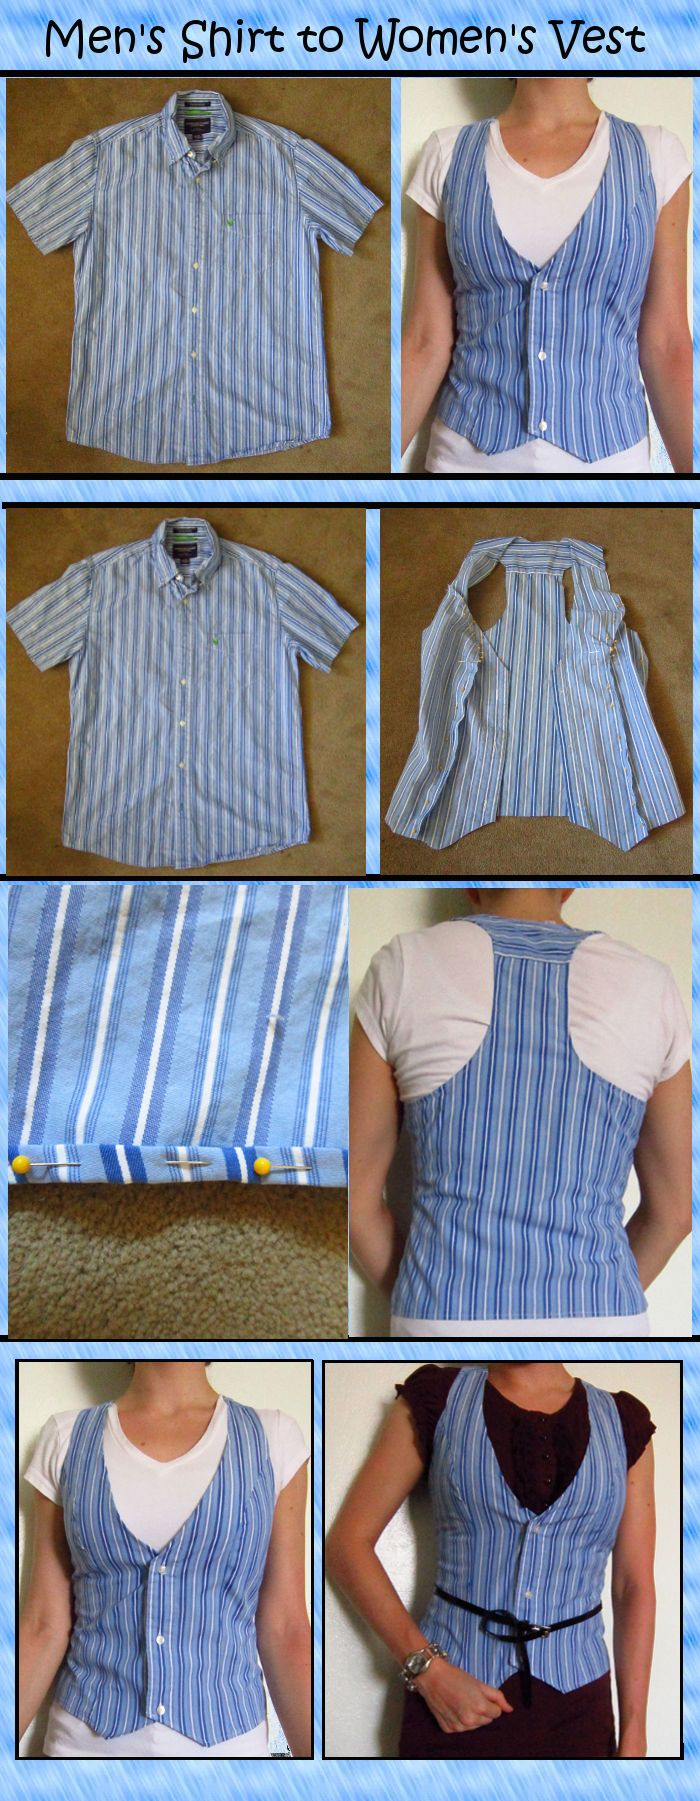 #Upcycle #Shirt to #Vest  This shirt was headed to the D.I.